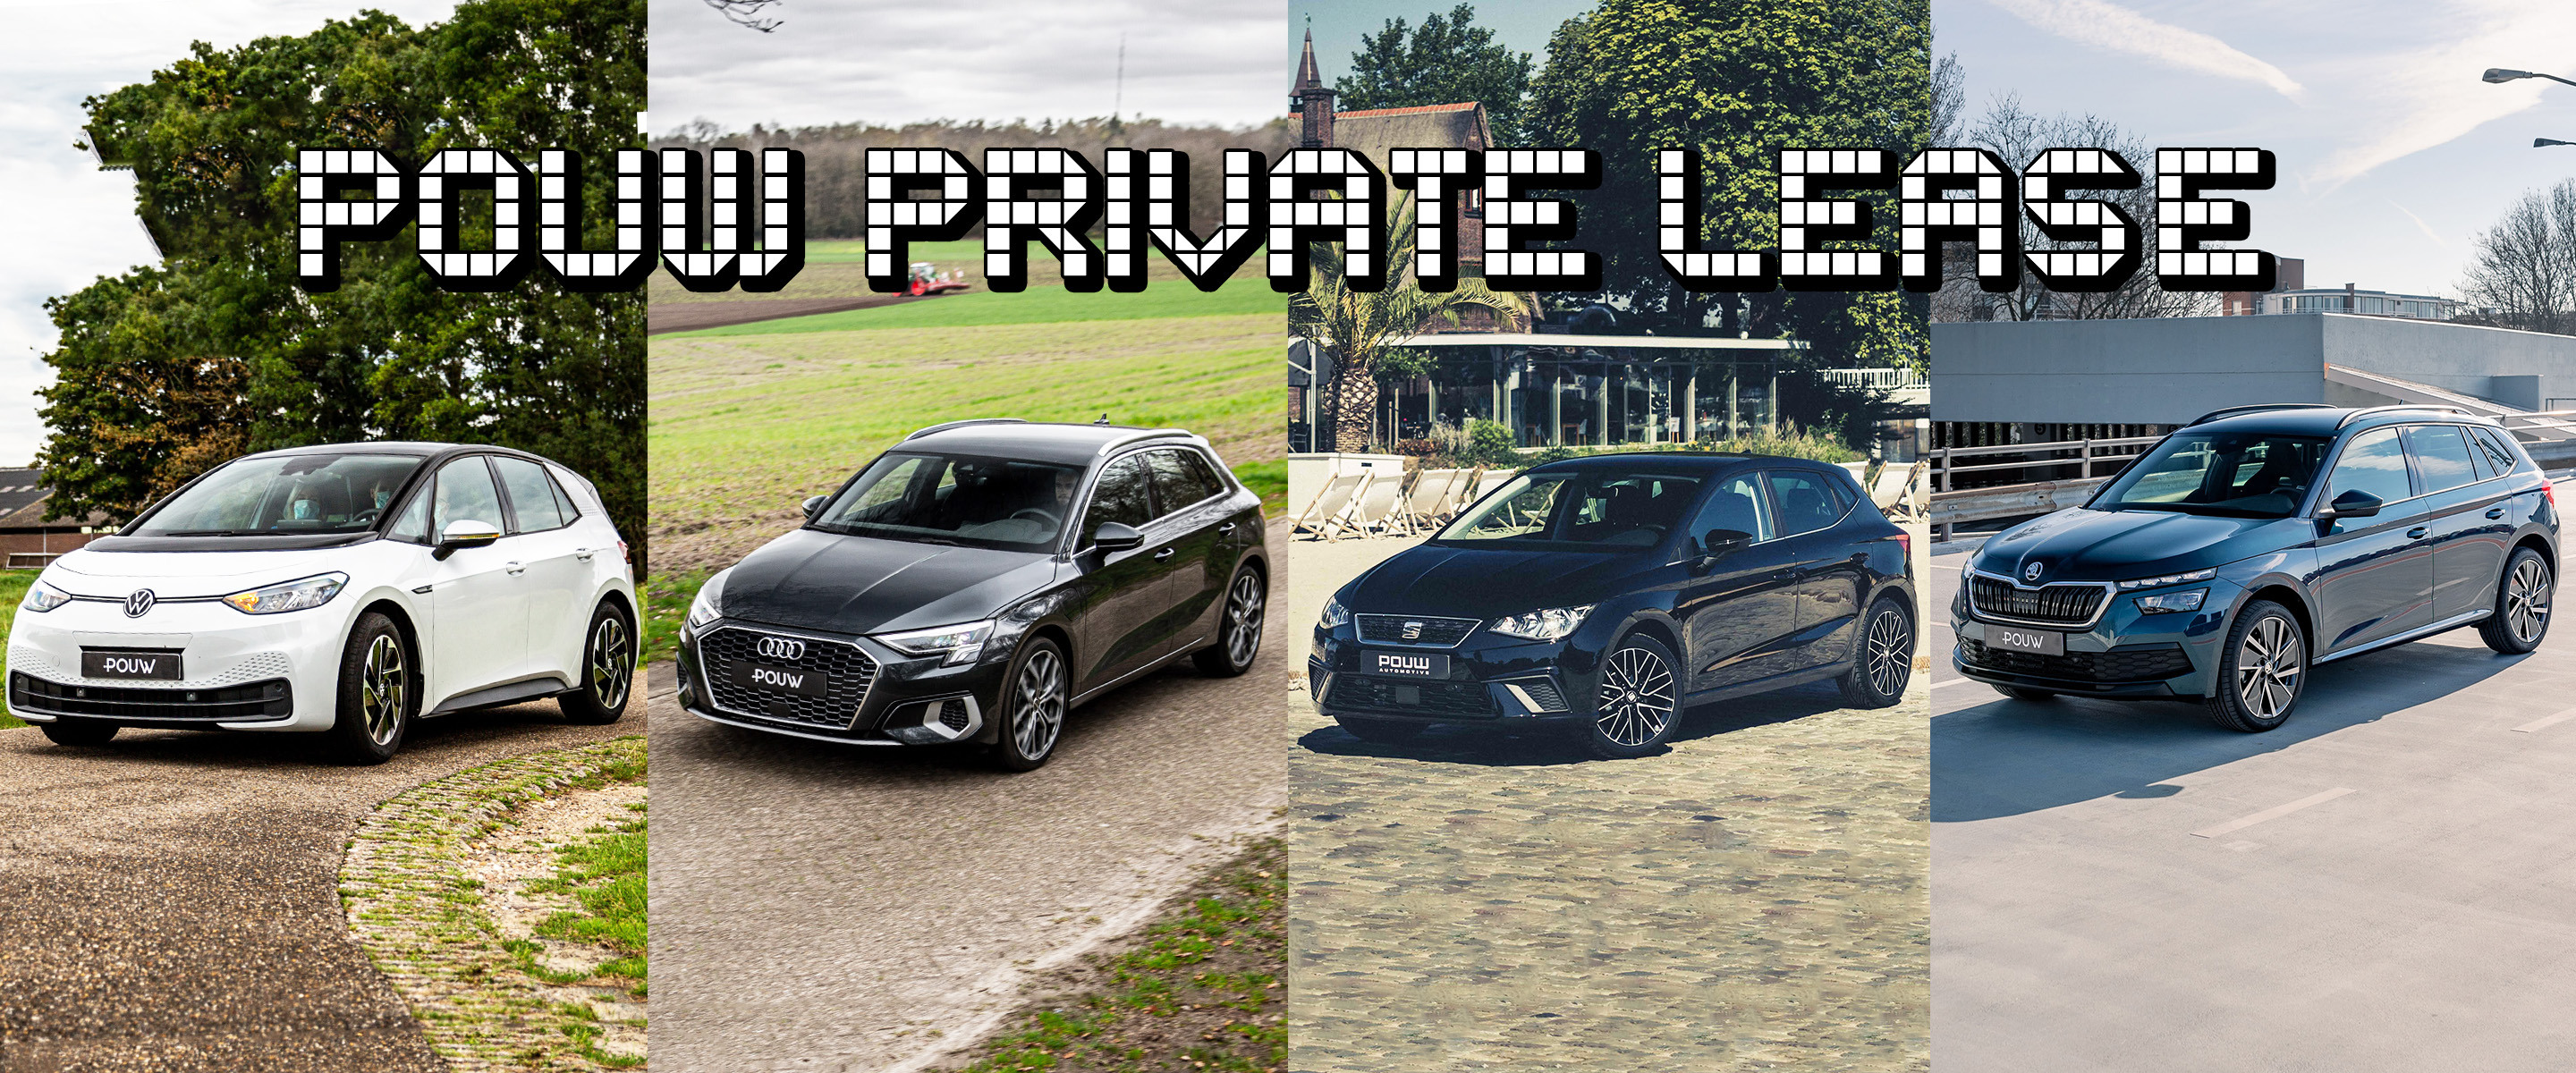 Private lease - Banner algemeen